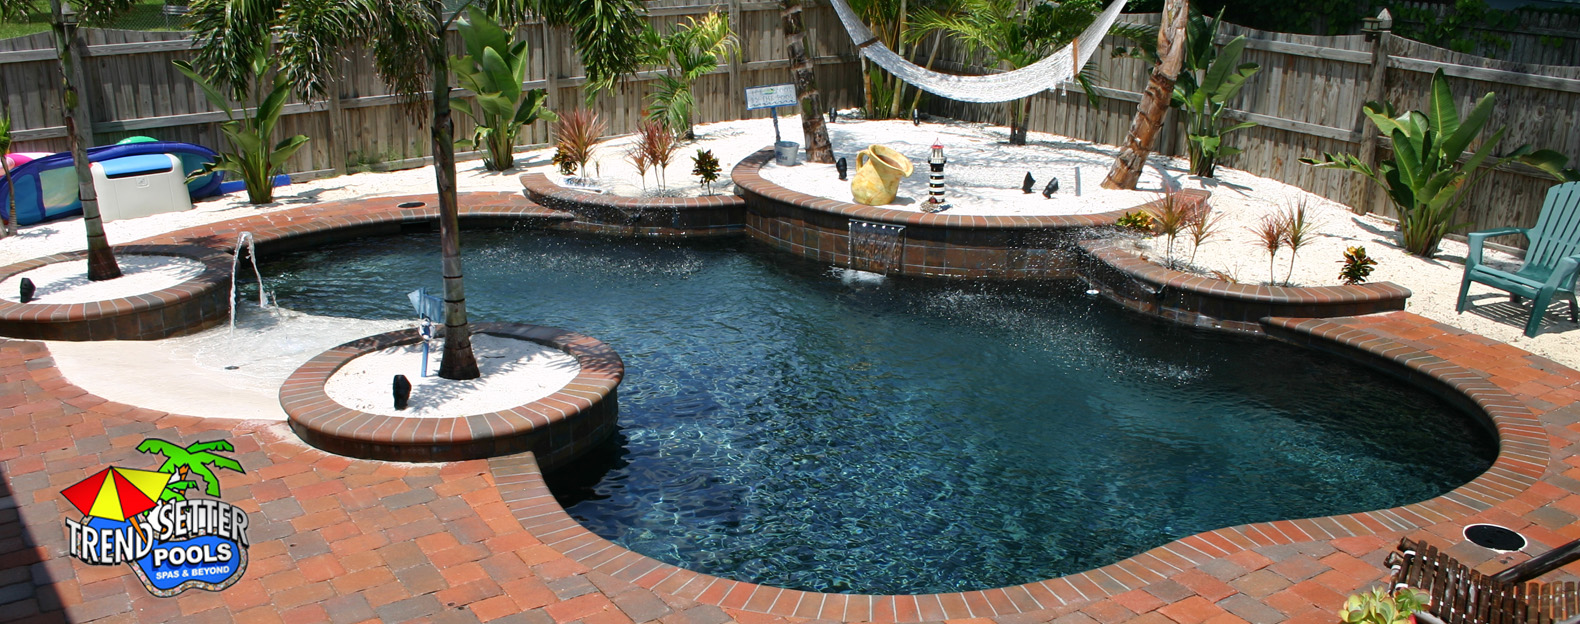 Trendsetter_Pools_Photo_Custom_Pool_1